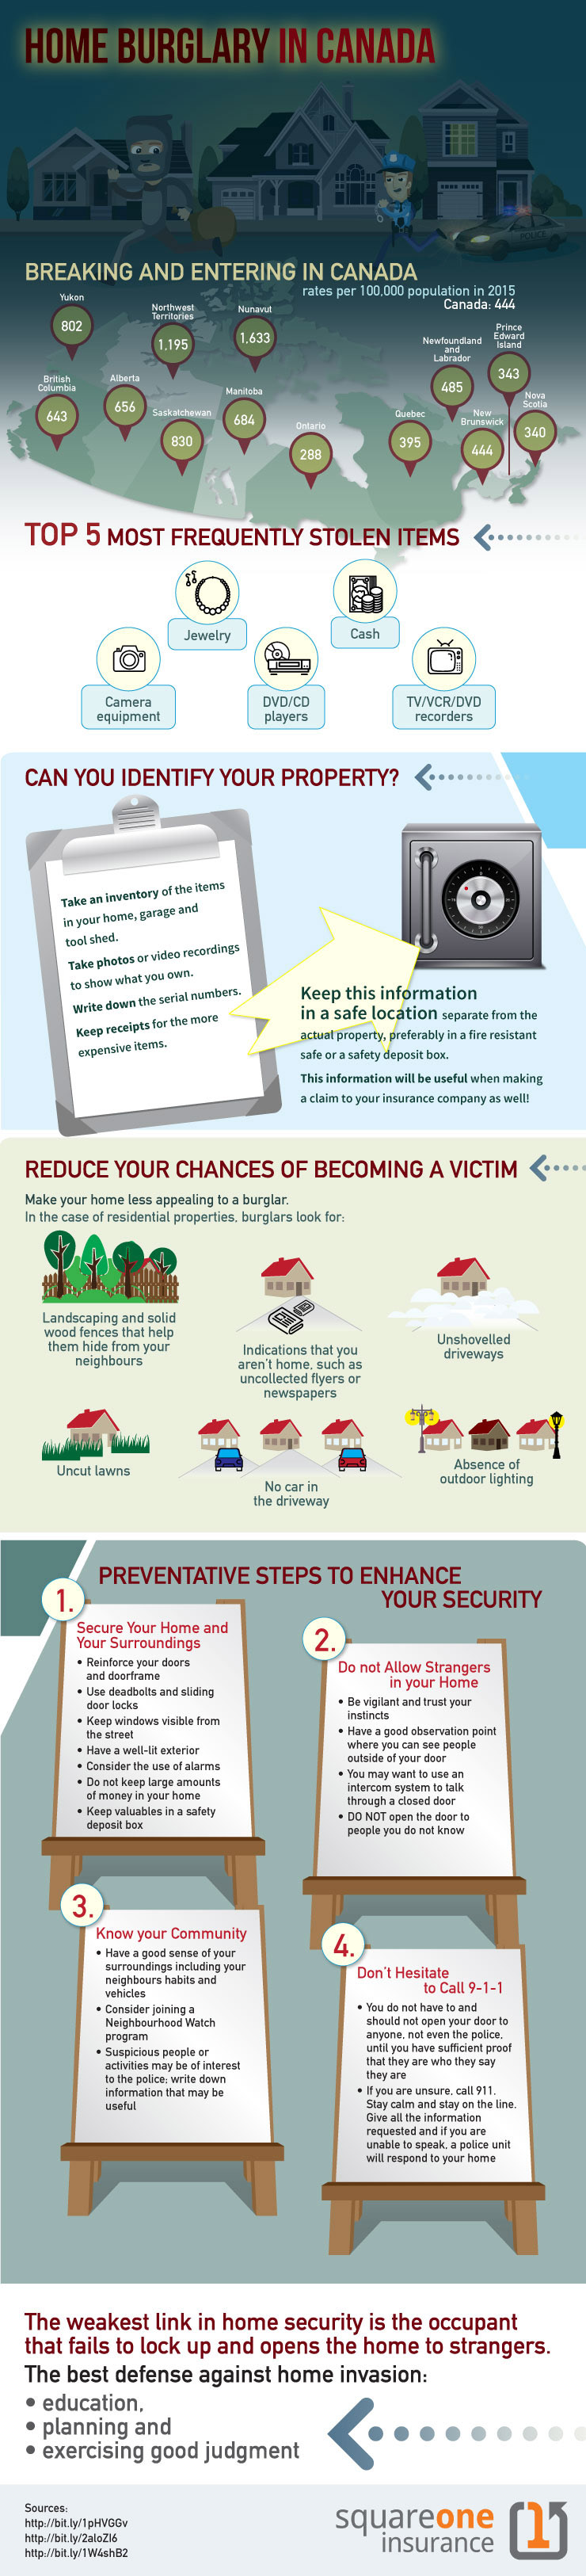 Infographic about home burglaries in Canada and prevention tips